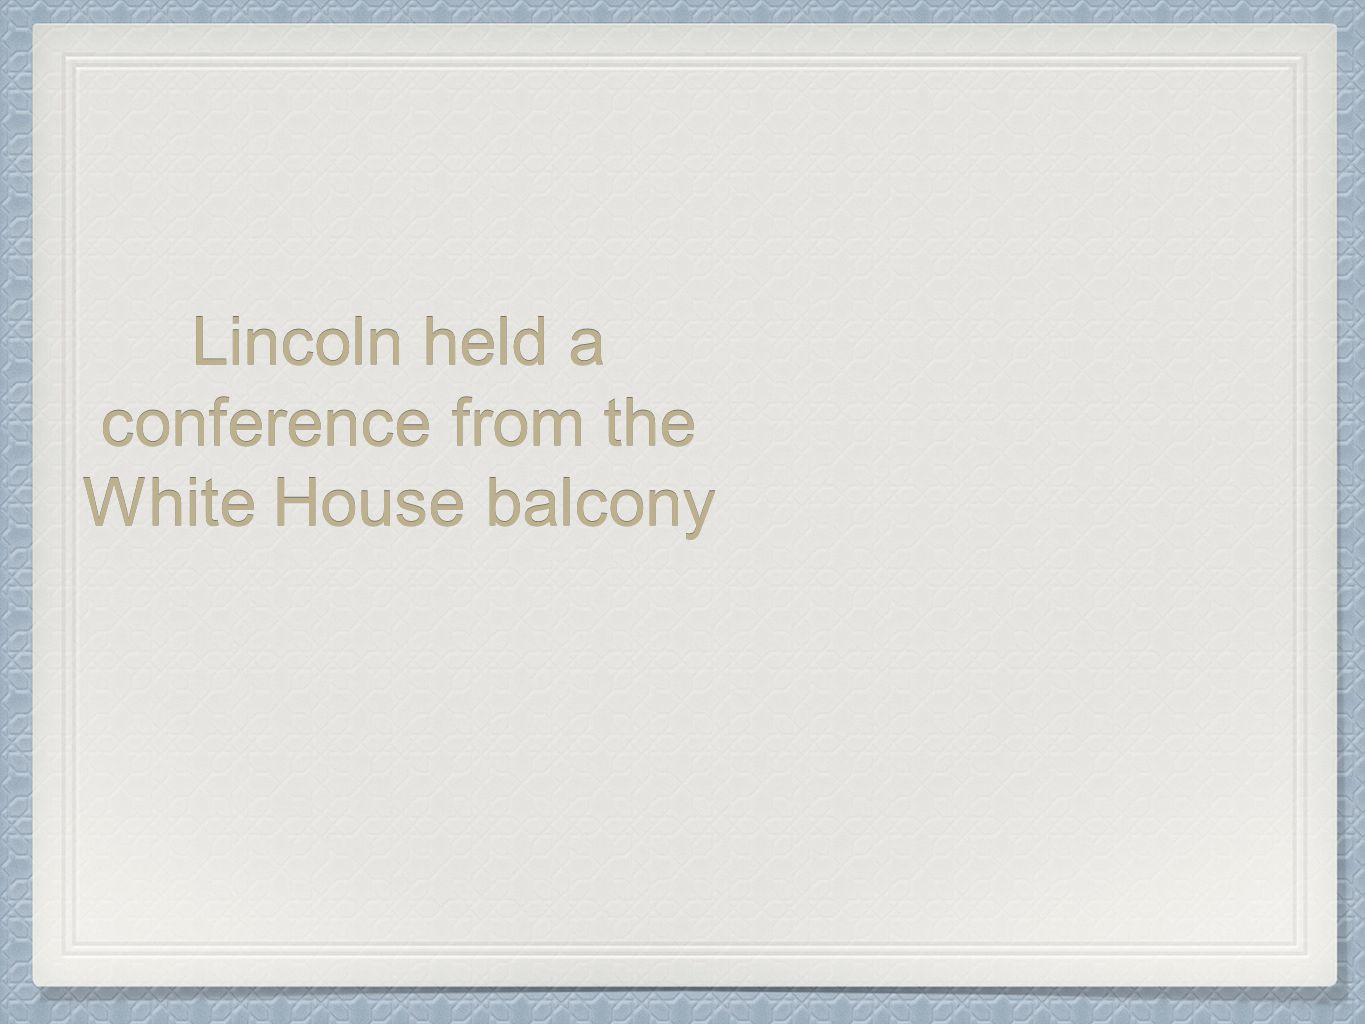 Lincoln held a conference from the White House balcony